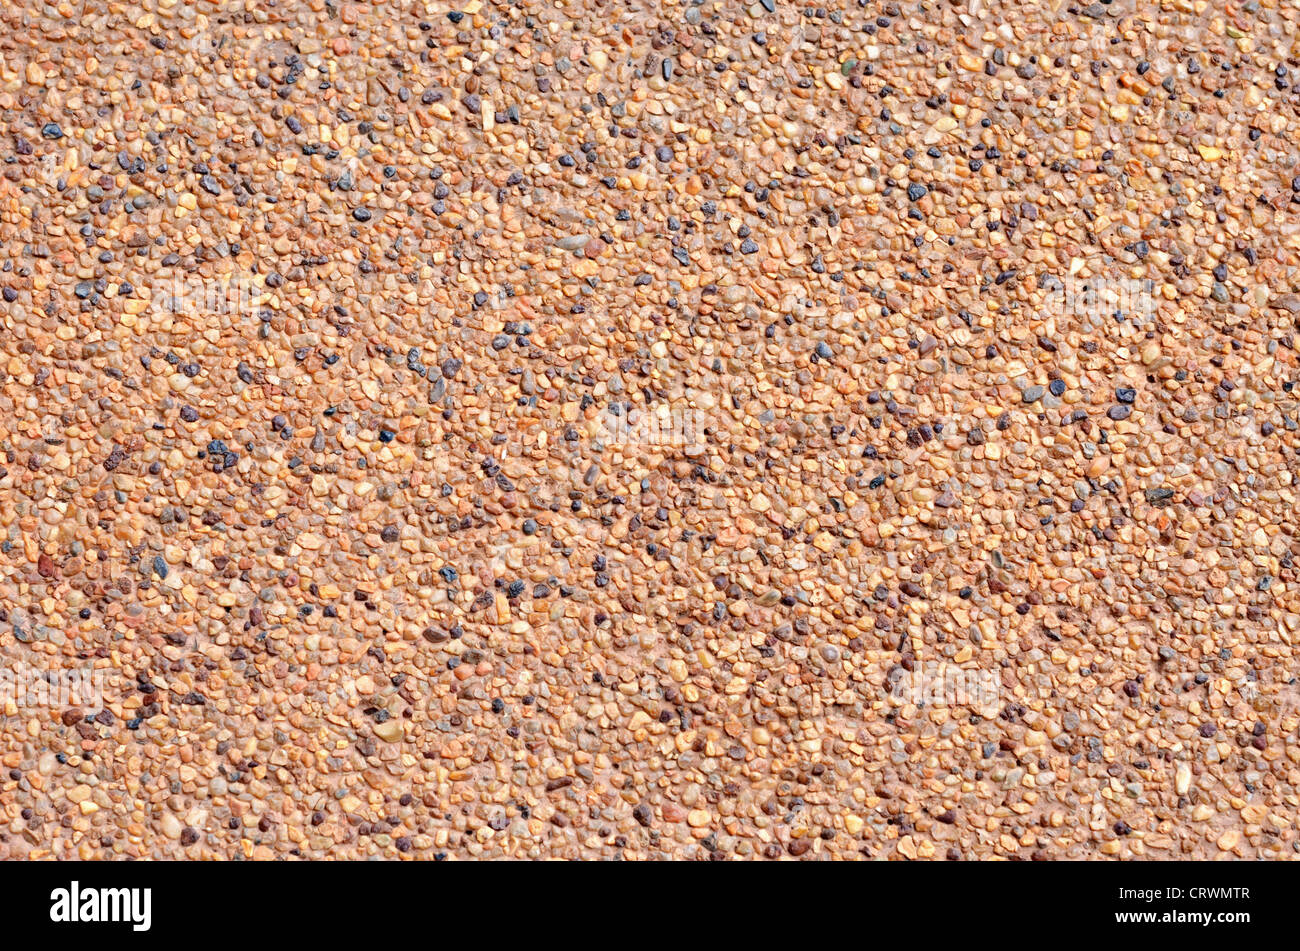 Red Shale Stone : Art background with red shale and sandstone soil